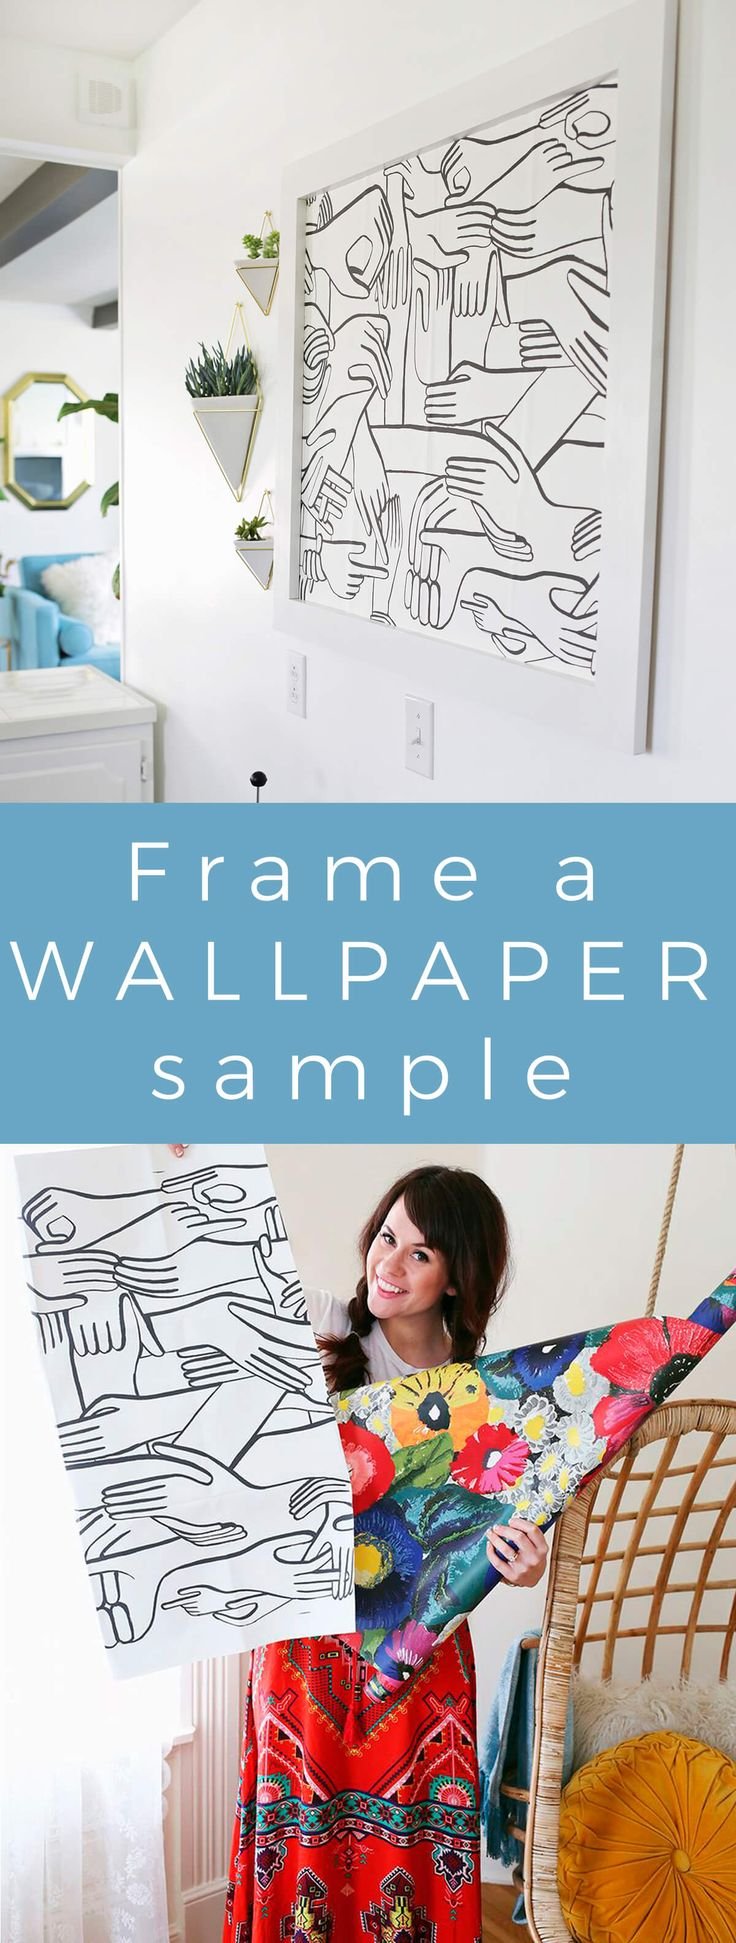 Try This: Frame a wallpaper sample